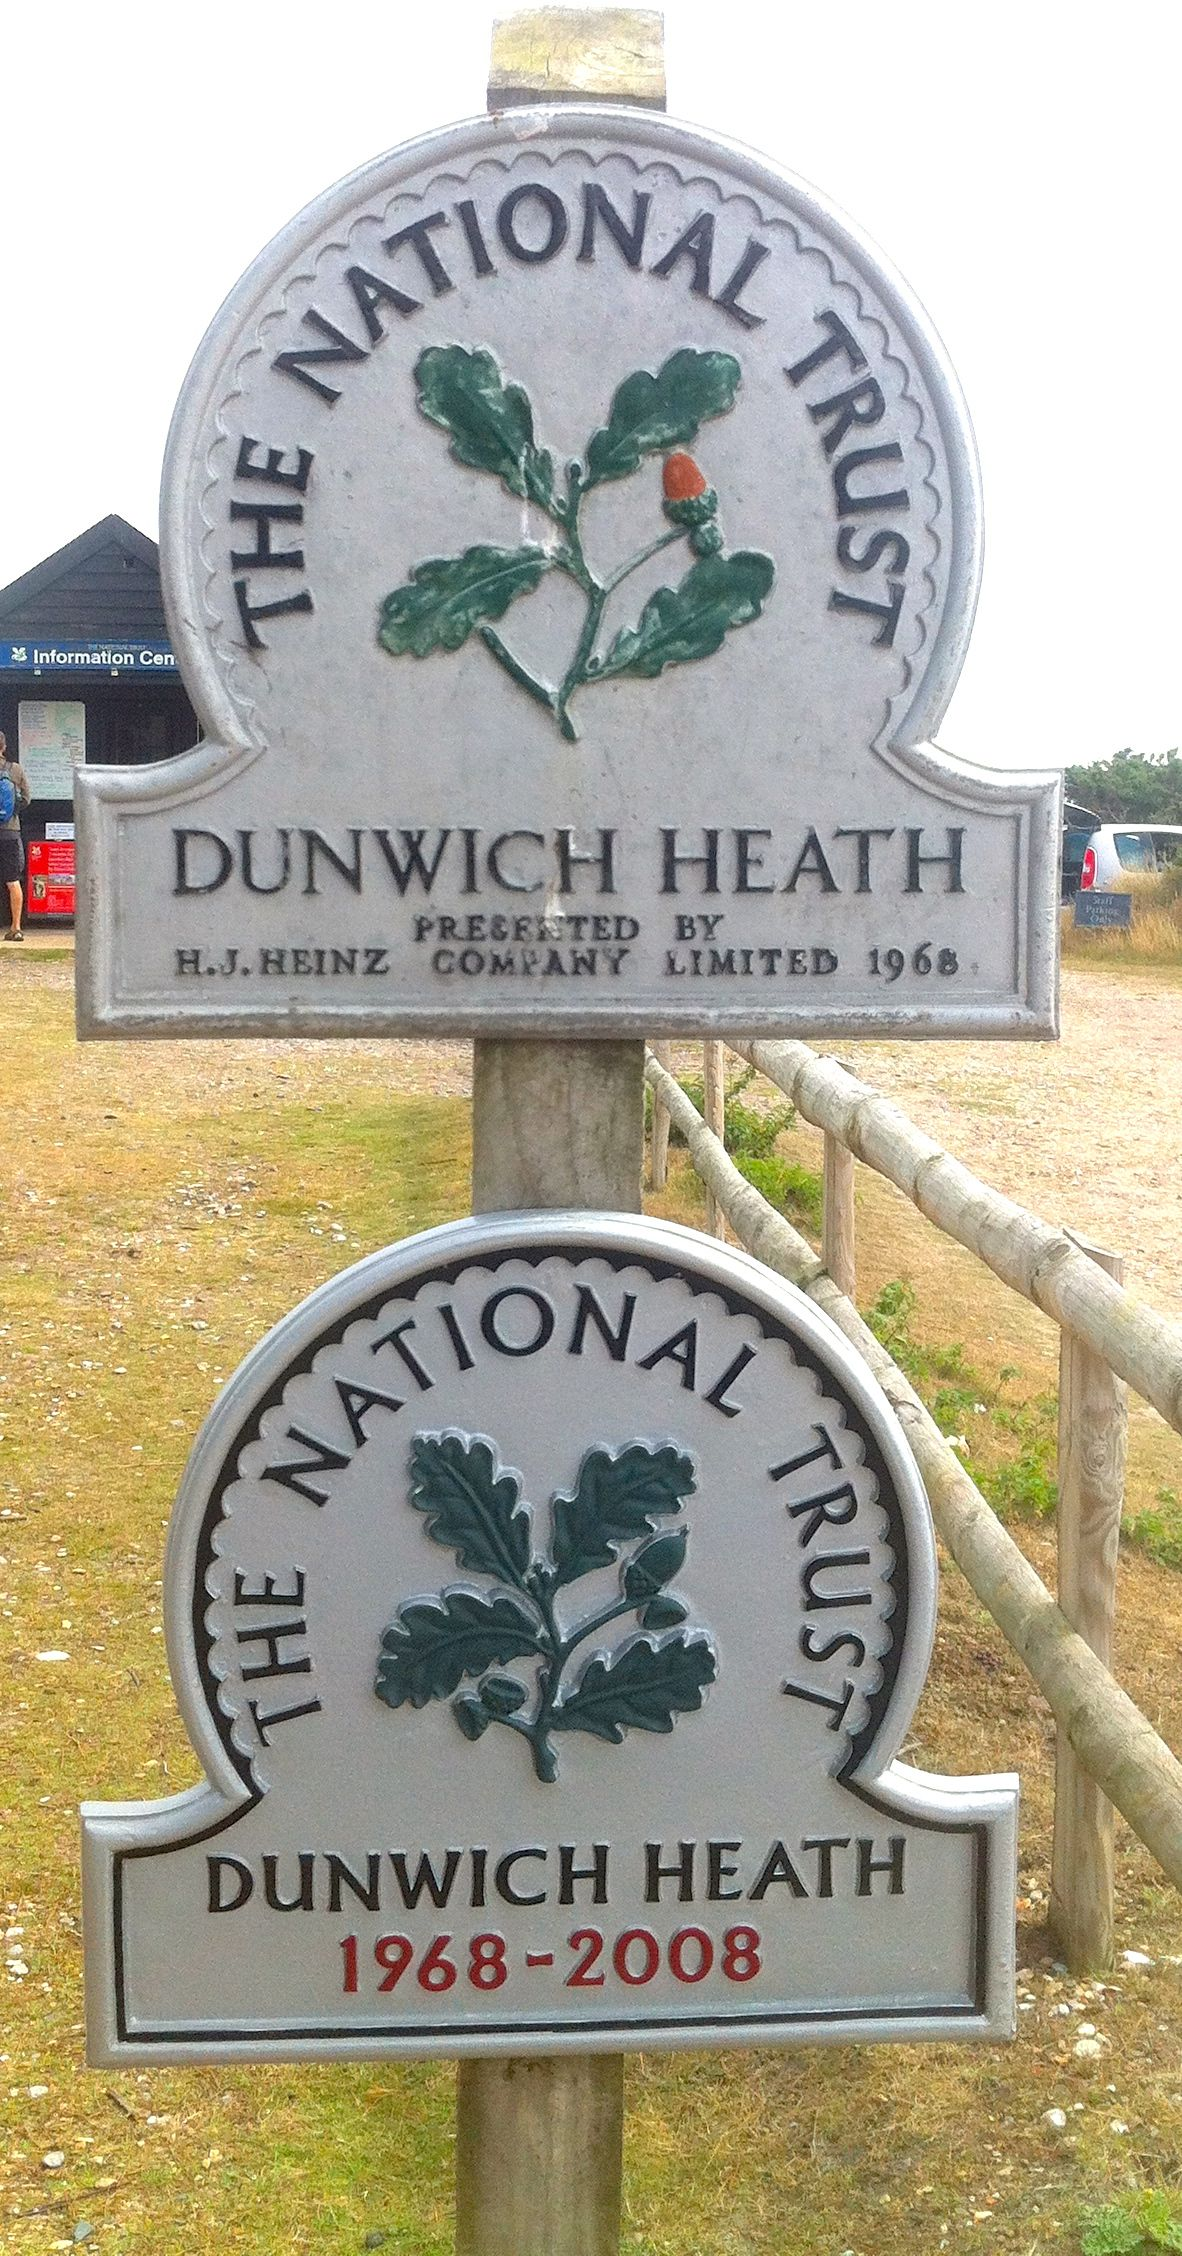 Dunwich Heath National Trust